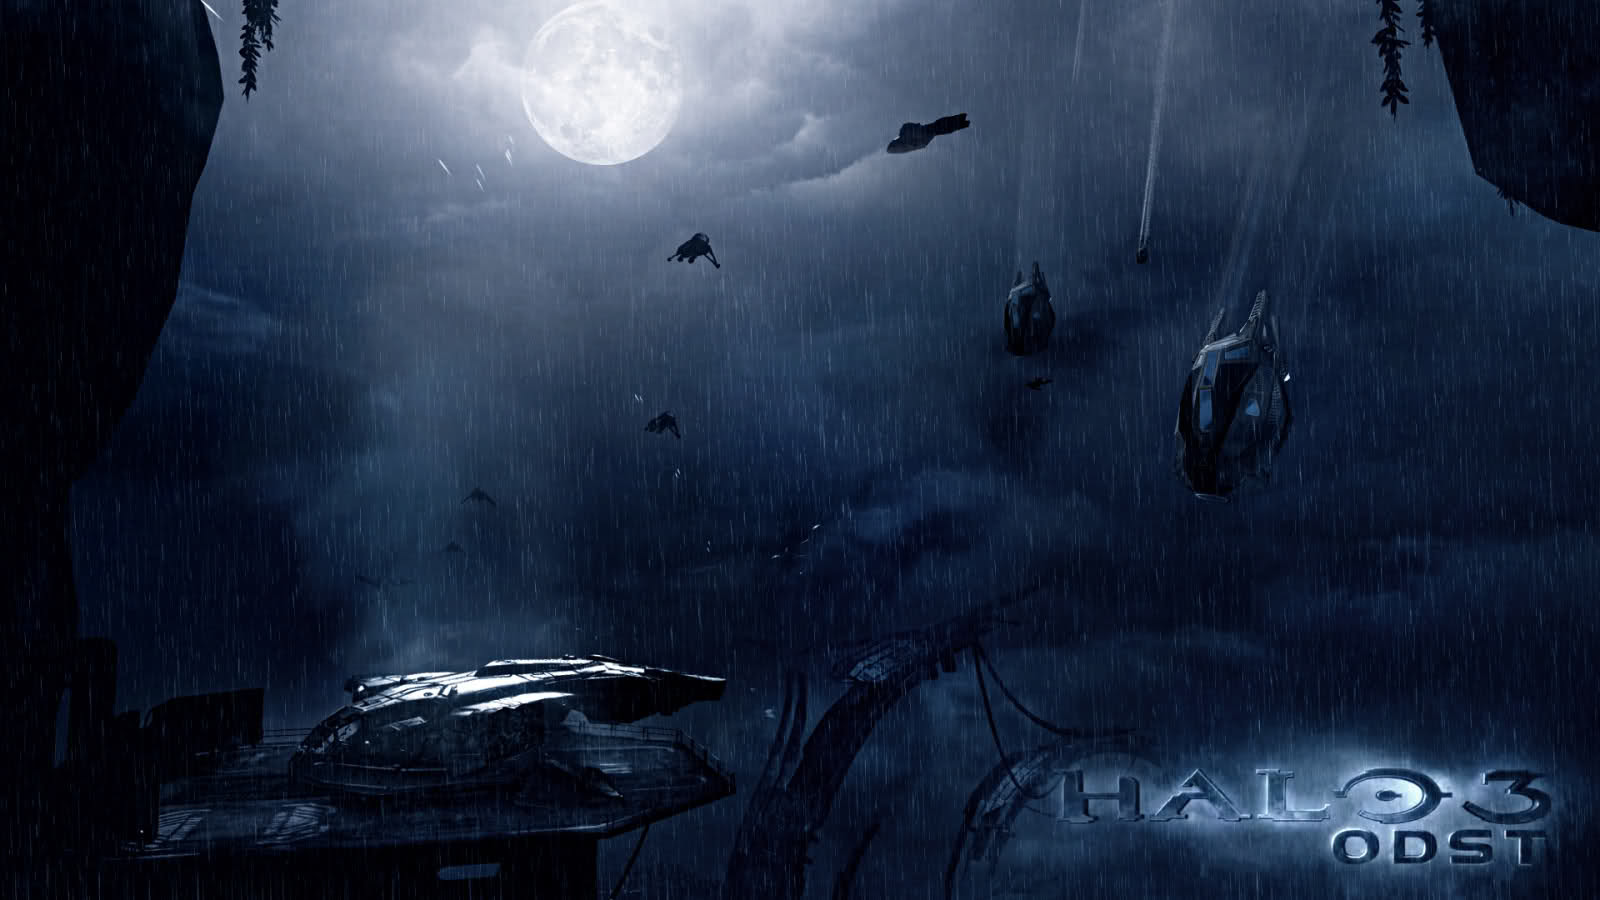 Halo Odst Backgrounds Sf Wallpaper